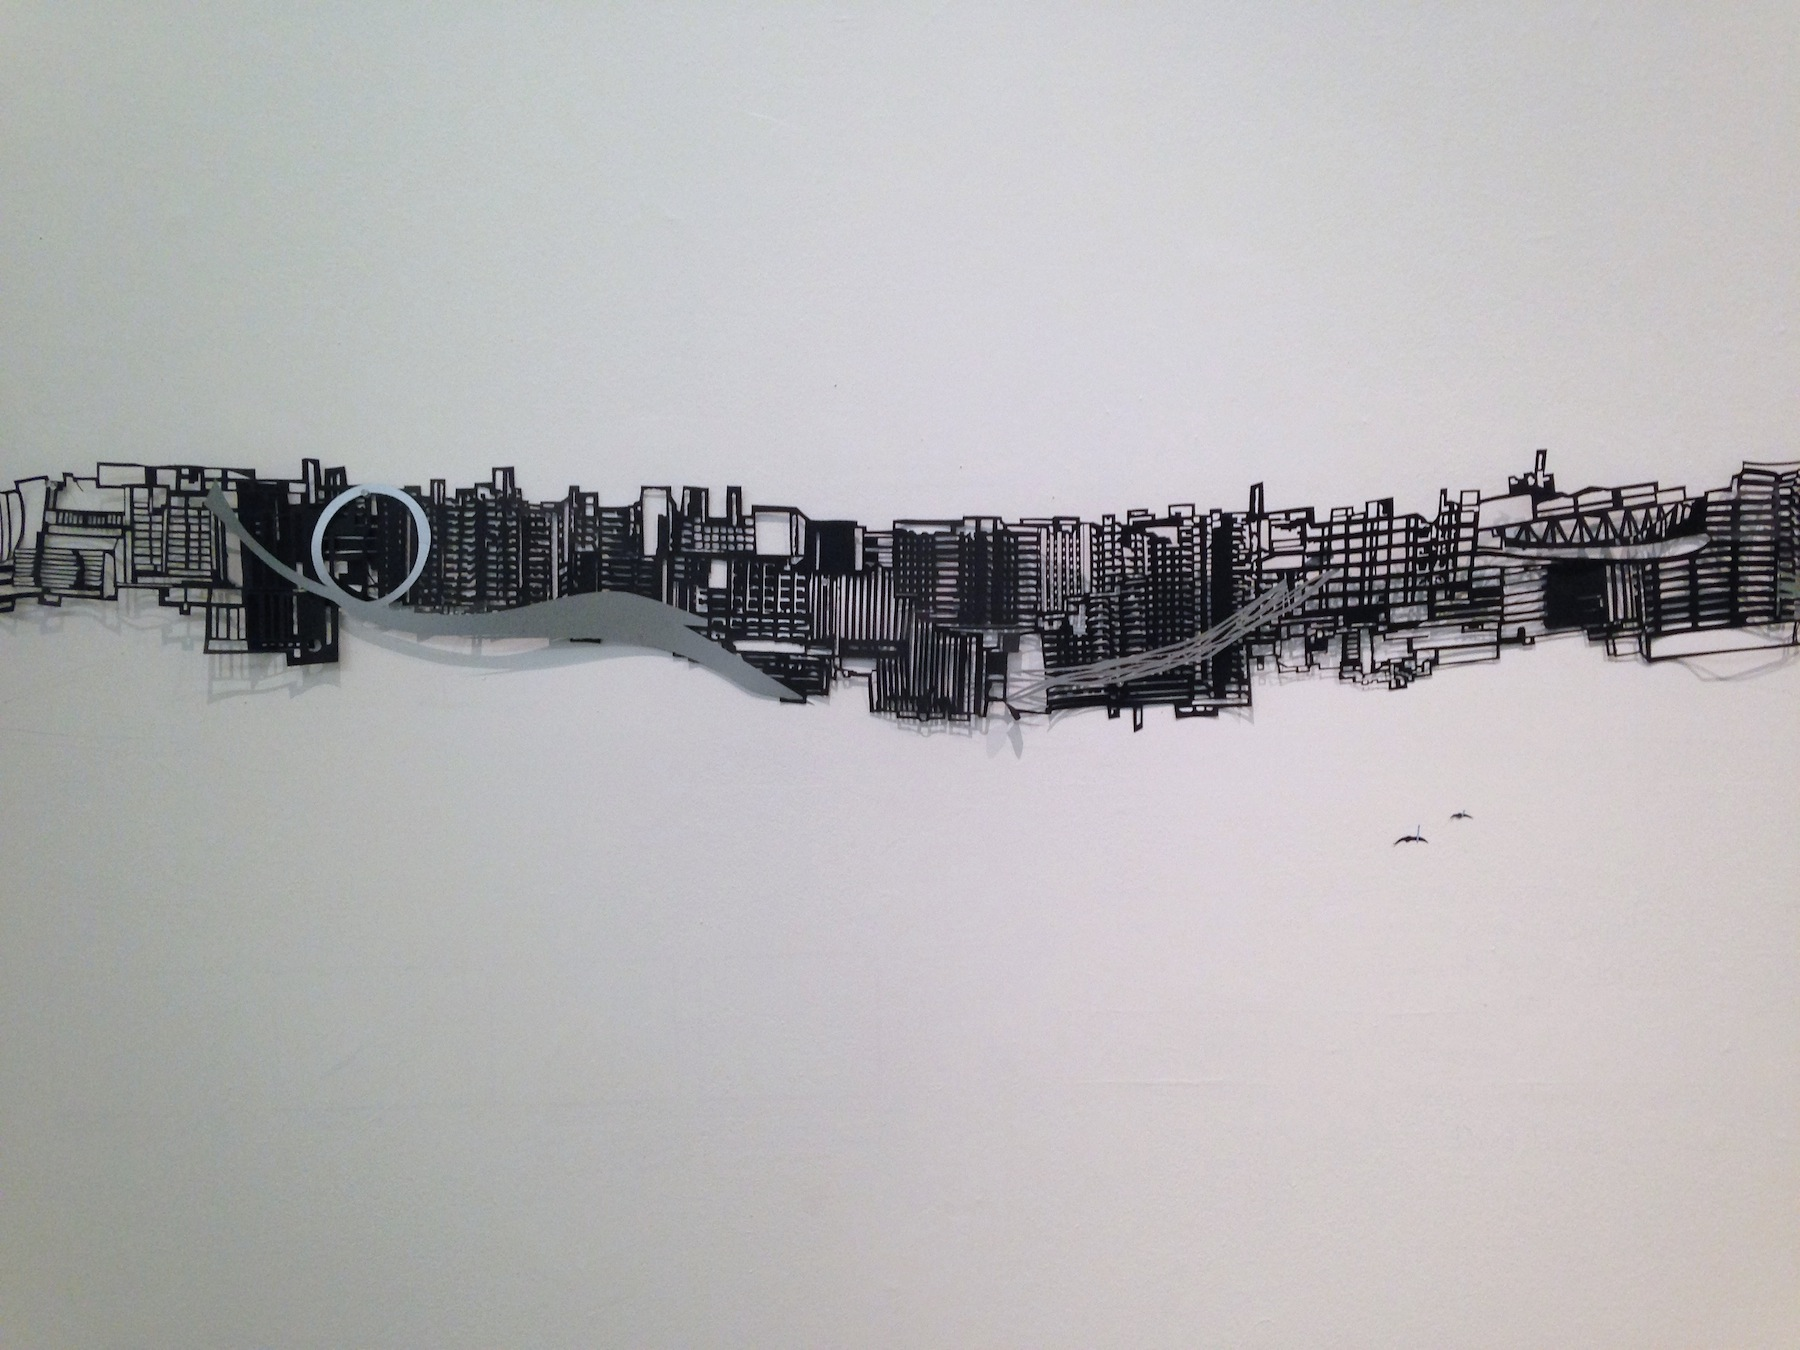 3-5 ft x 32 ft Cut paper, collage, ink and graphite on wall Marble sculpture design by Frances Gallardo, executed by Ramón Berríos.